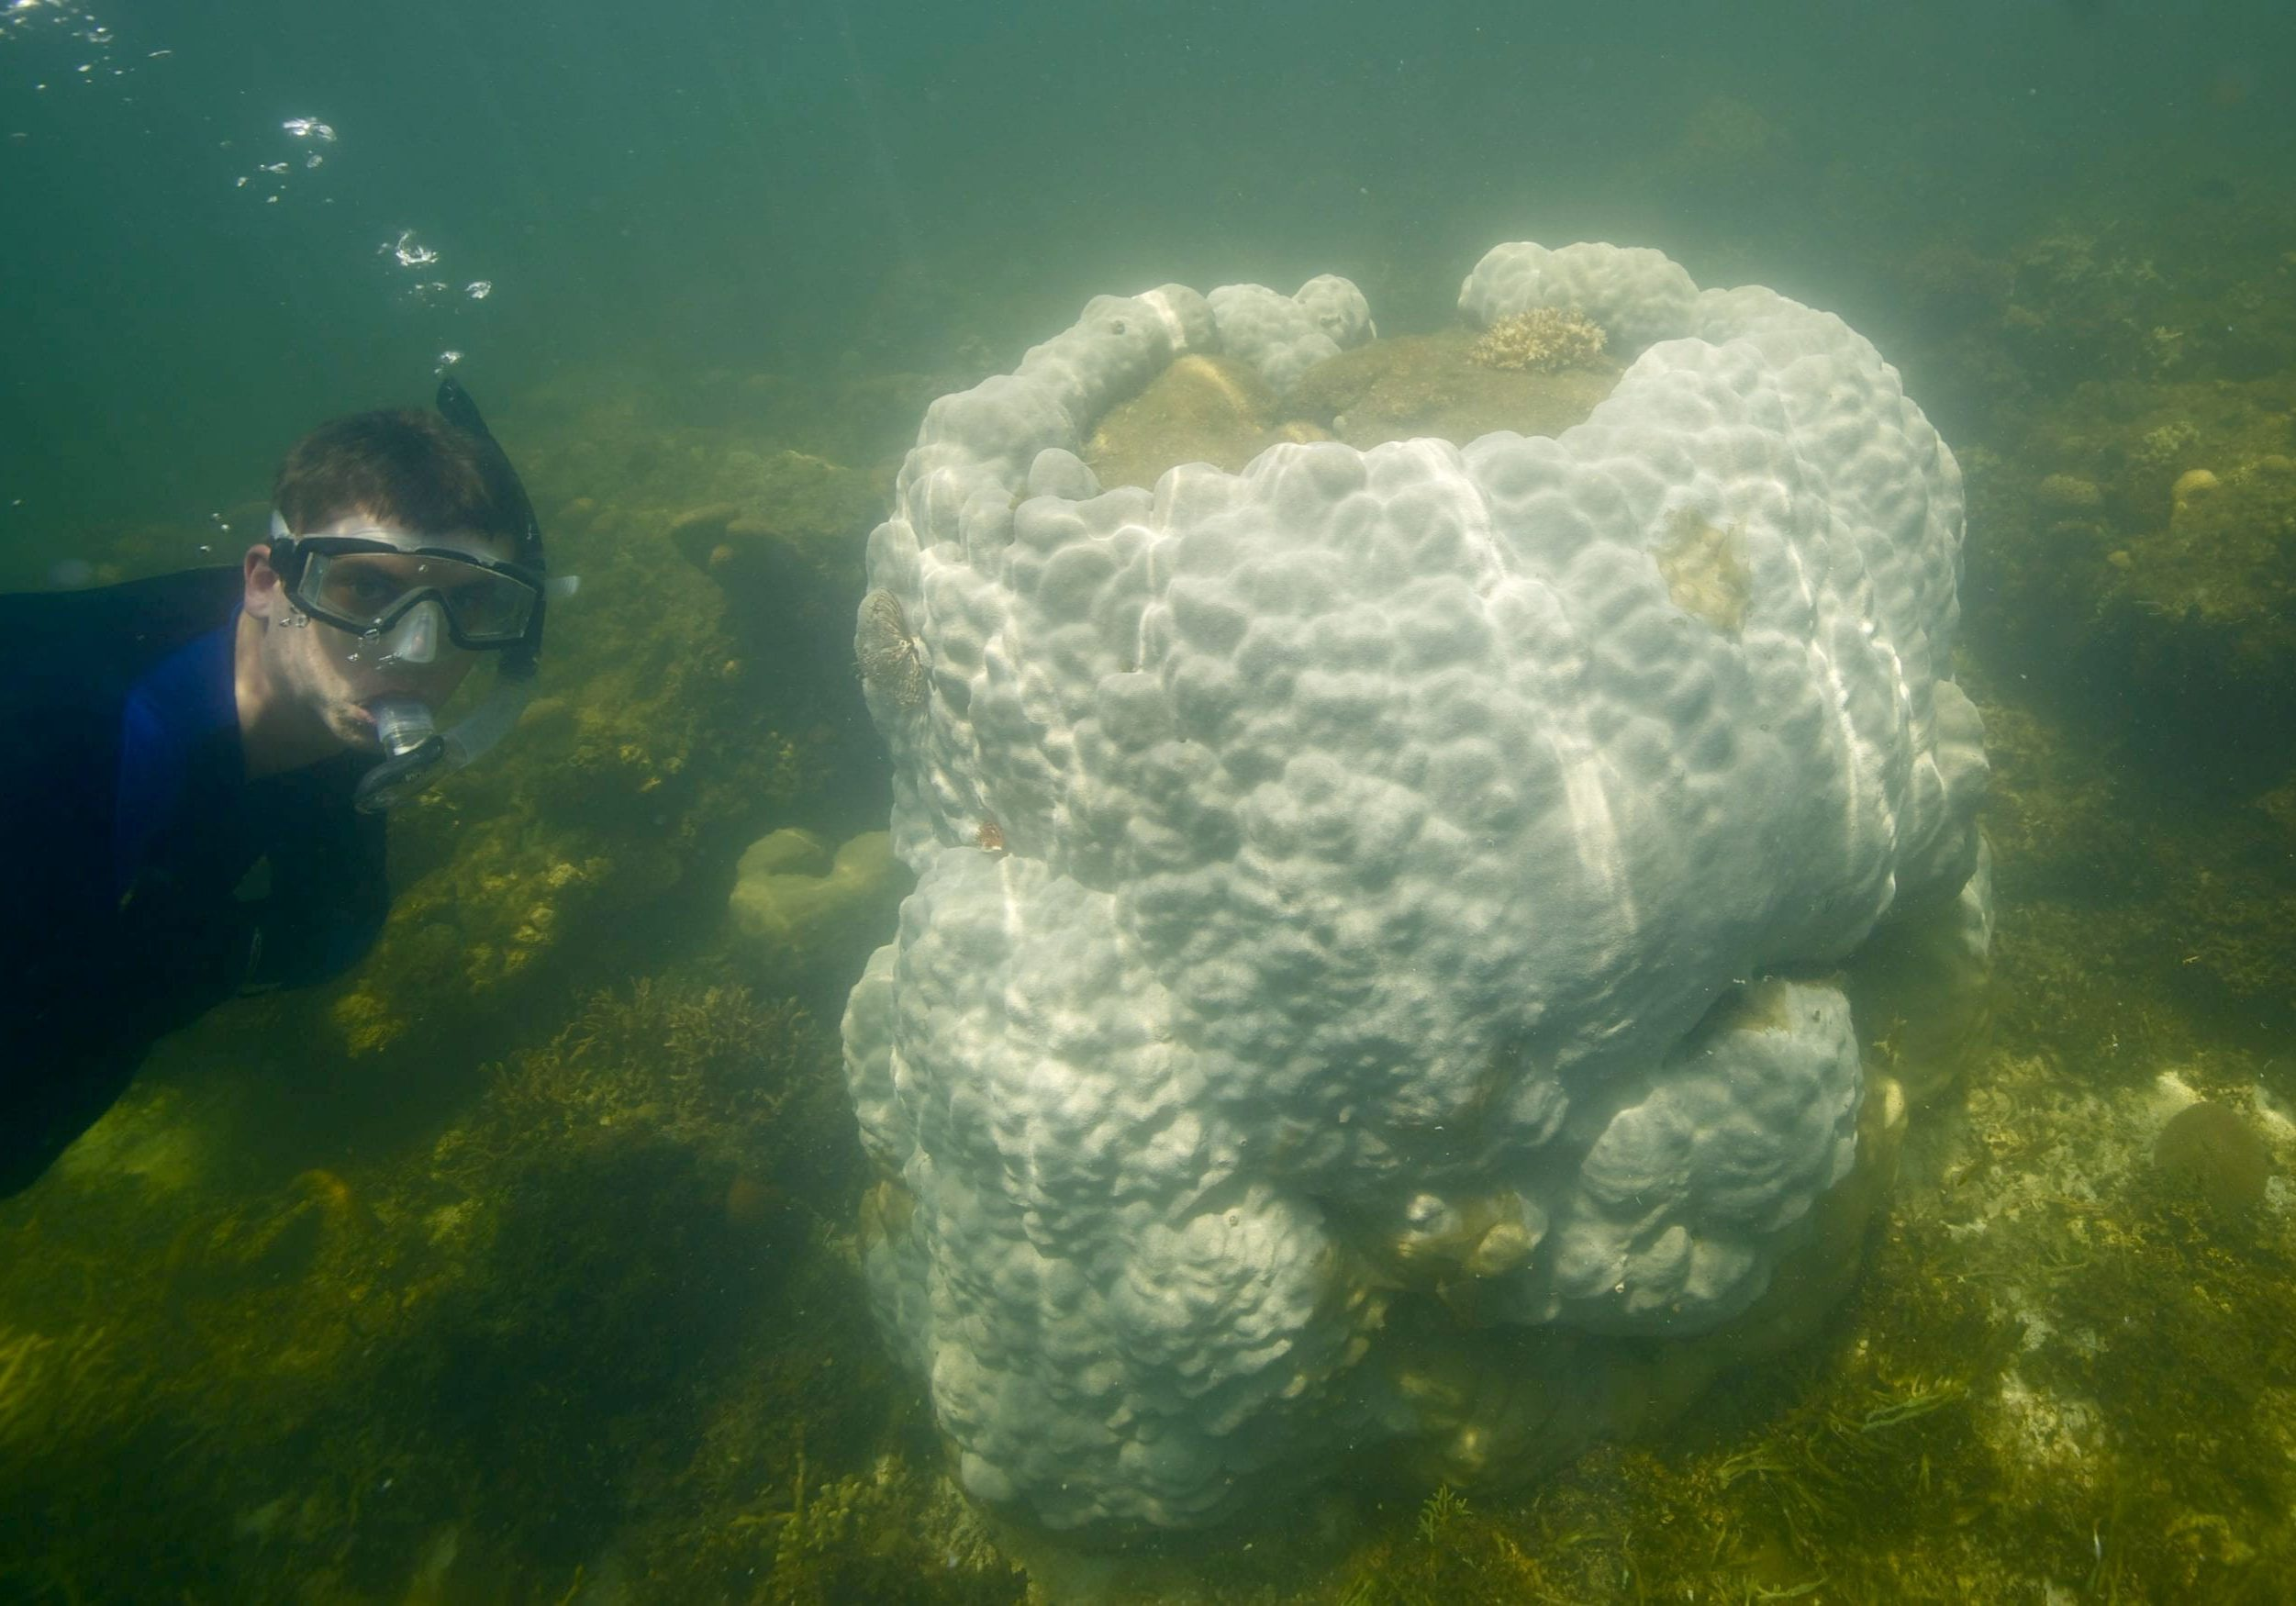 MIT-WHOI Joint Program student  Tom DeCarlo inspecting a bleached coral in the South China Sea.  (Photo by Pat Lohmann, © Woods Hole Oceanographic Institution)